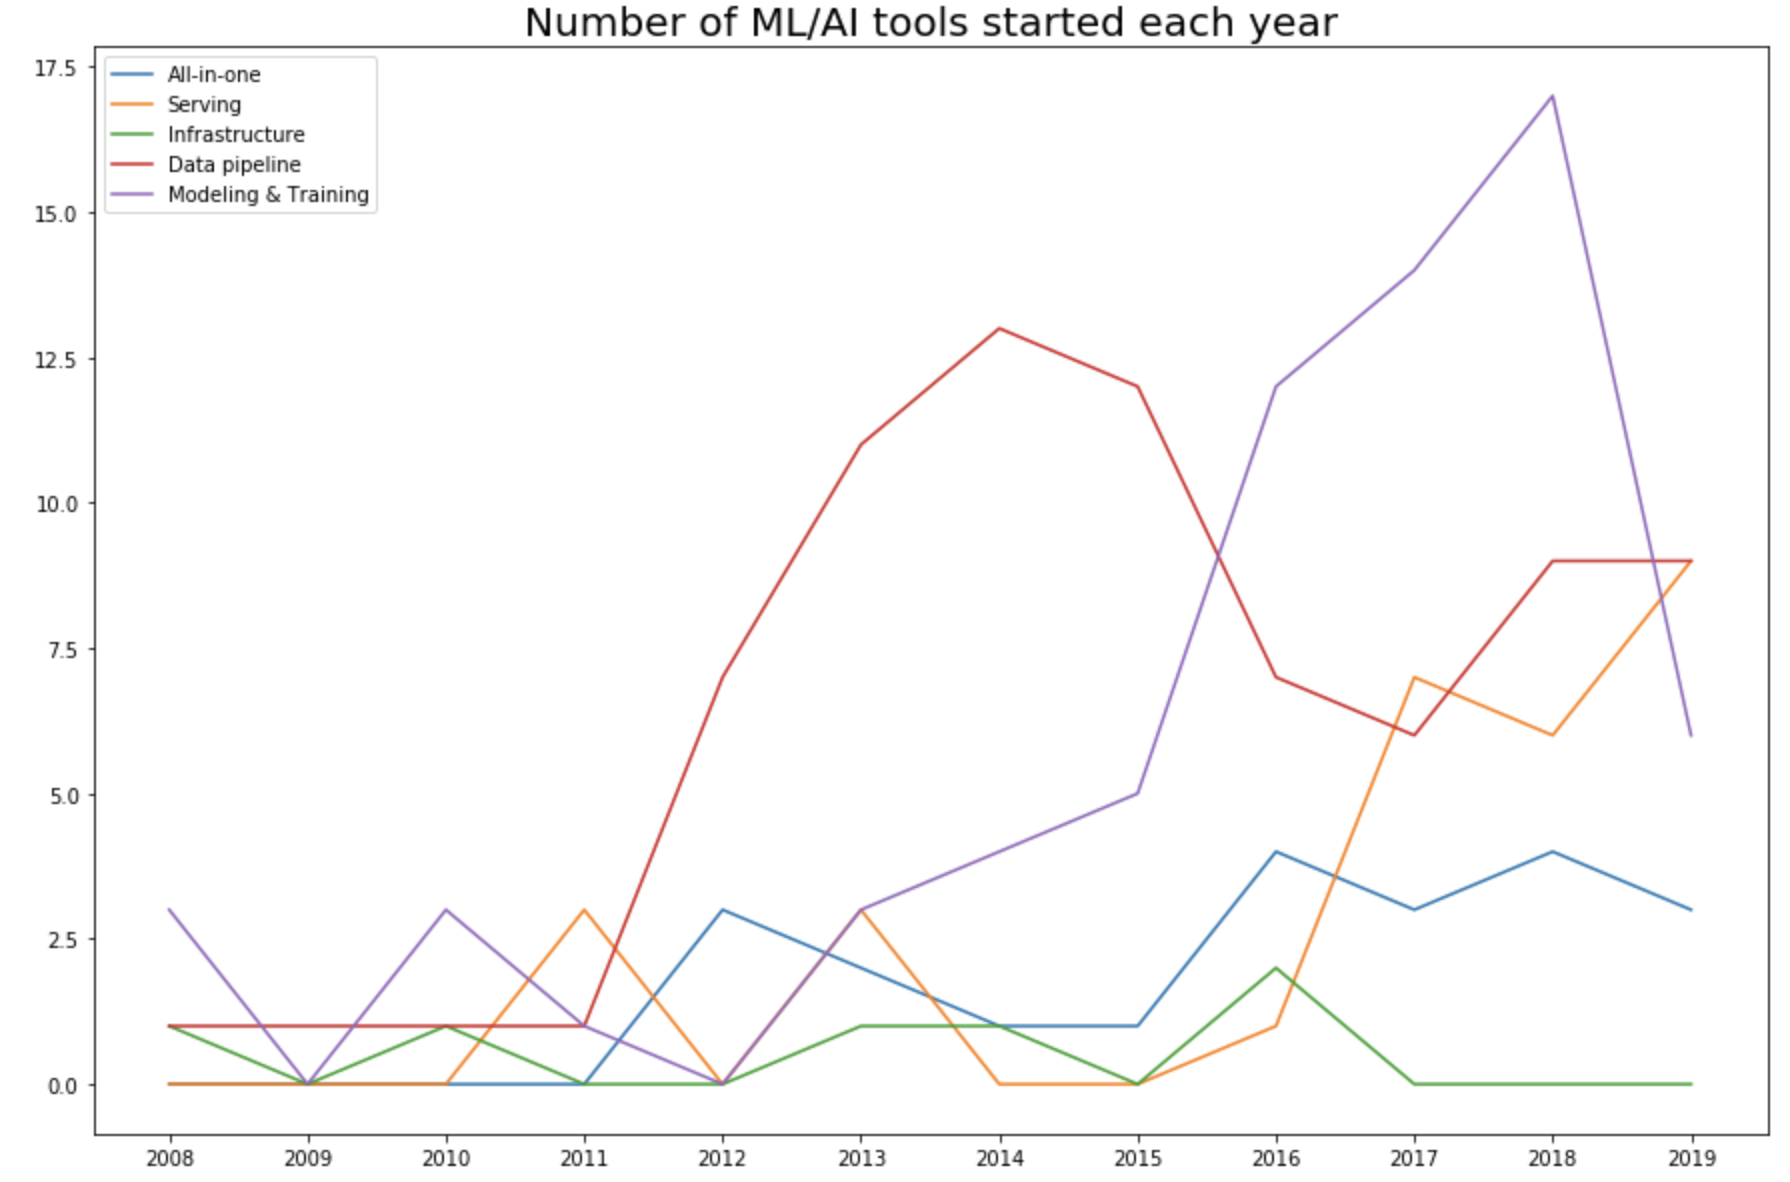 Number of tools started each year